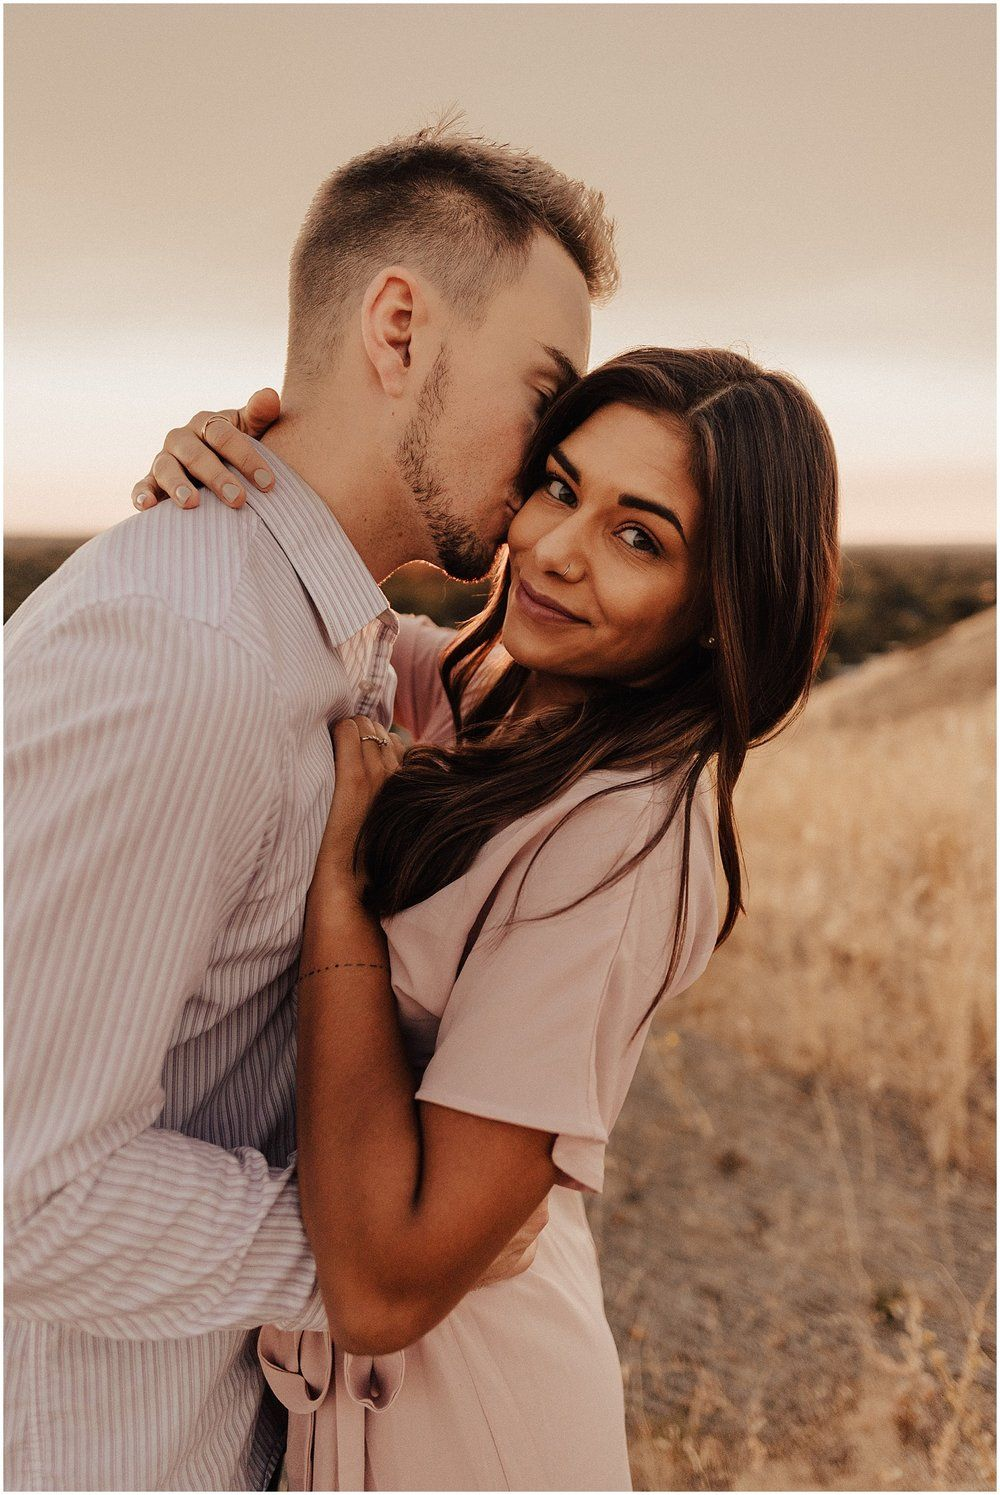 COLE + ANGIE // SUNNY, SUMMER ENGAGEMENT —  rosie nary – ❈ My Name is Love ❈